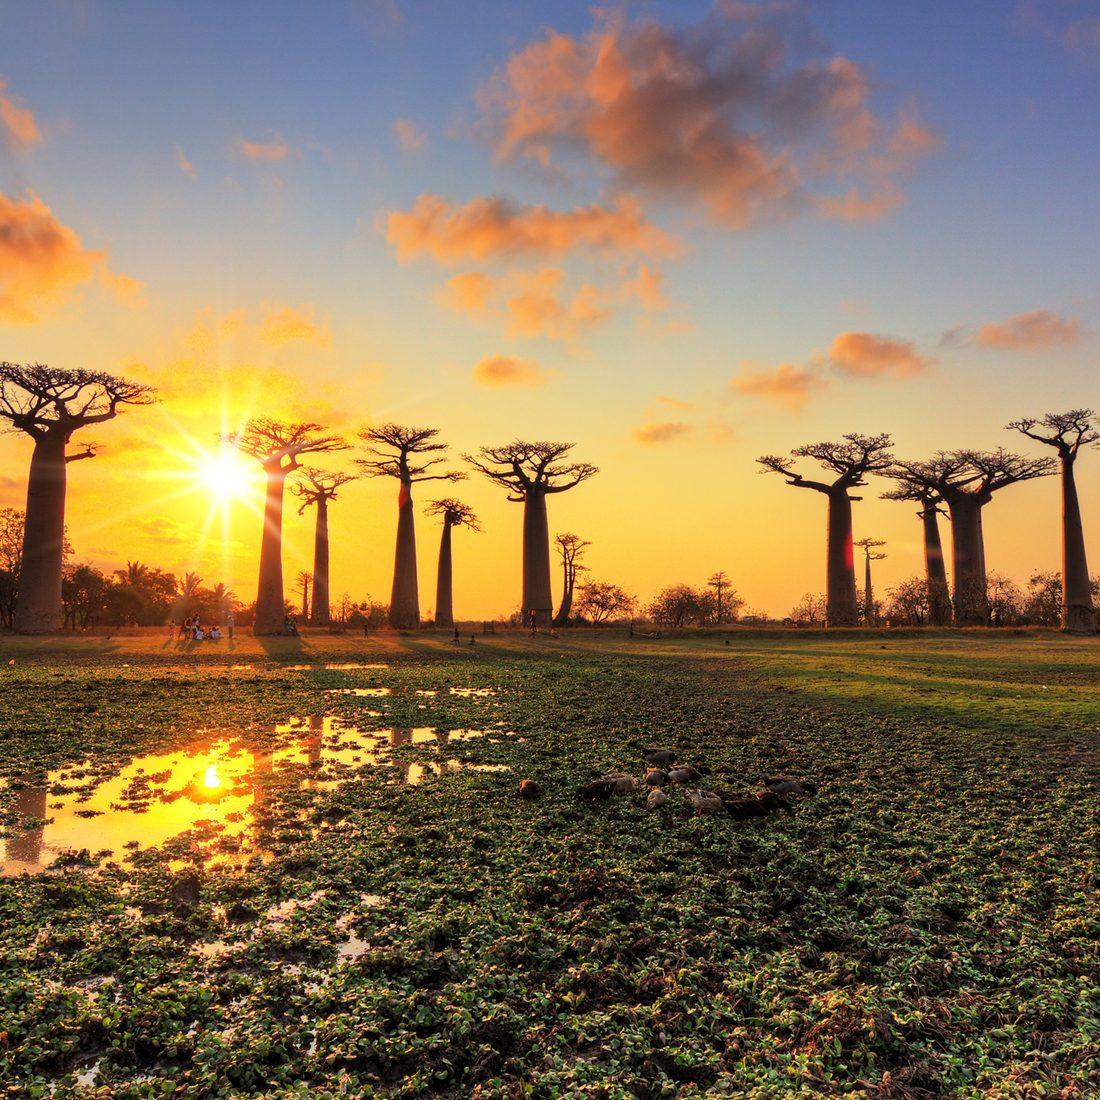 Beautiful Baobab trees at sunset at the avenue of the baobabs in Madagascar